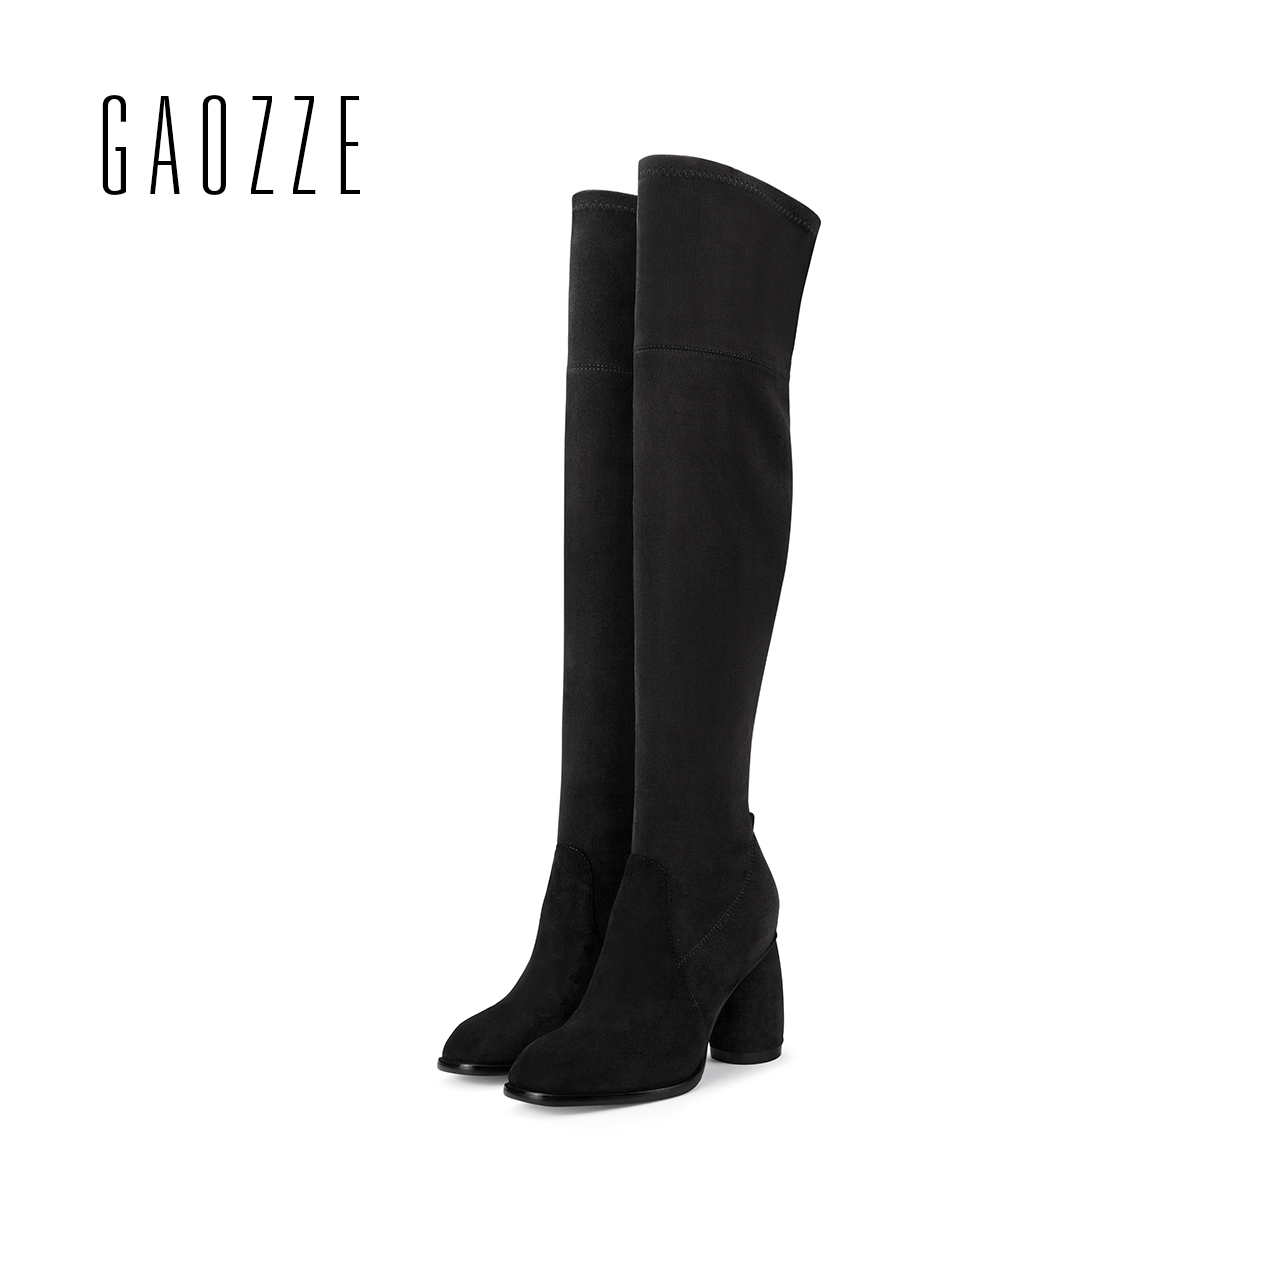 GAOZZE round toe women shoes thick high heel boots female high-heeled Over-the-Knee snow Boots 2017 winter autumn new qiu dong in fashionable boots sexy and comfortable women s shoes the new national style high heel heel thick heel